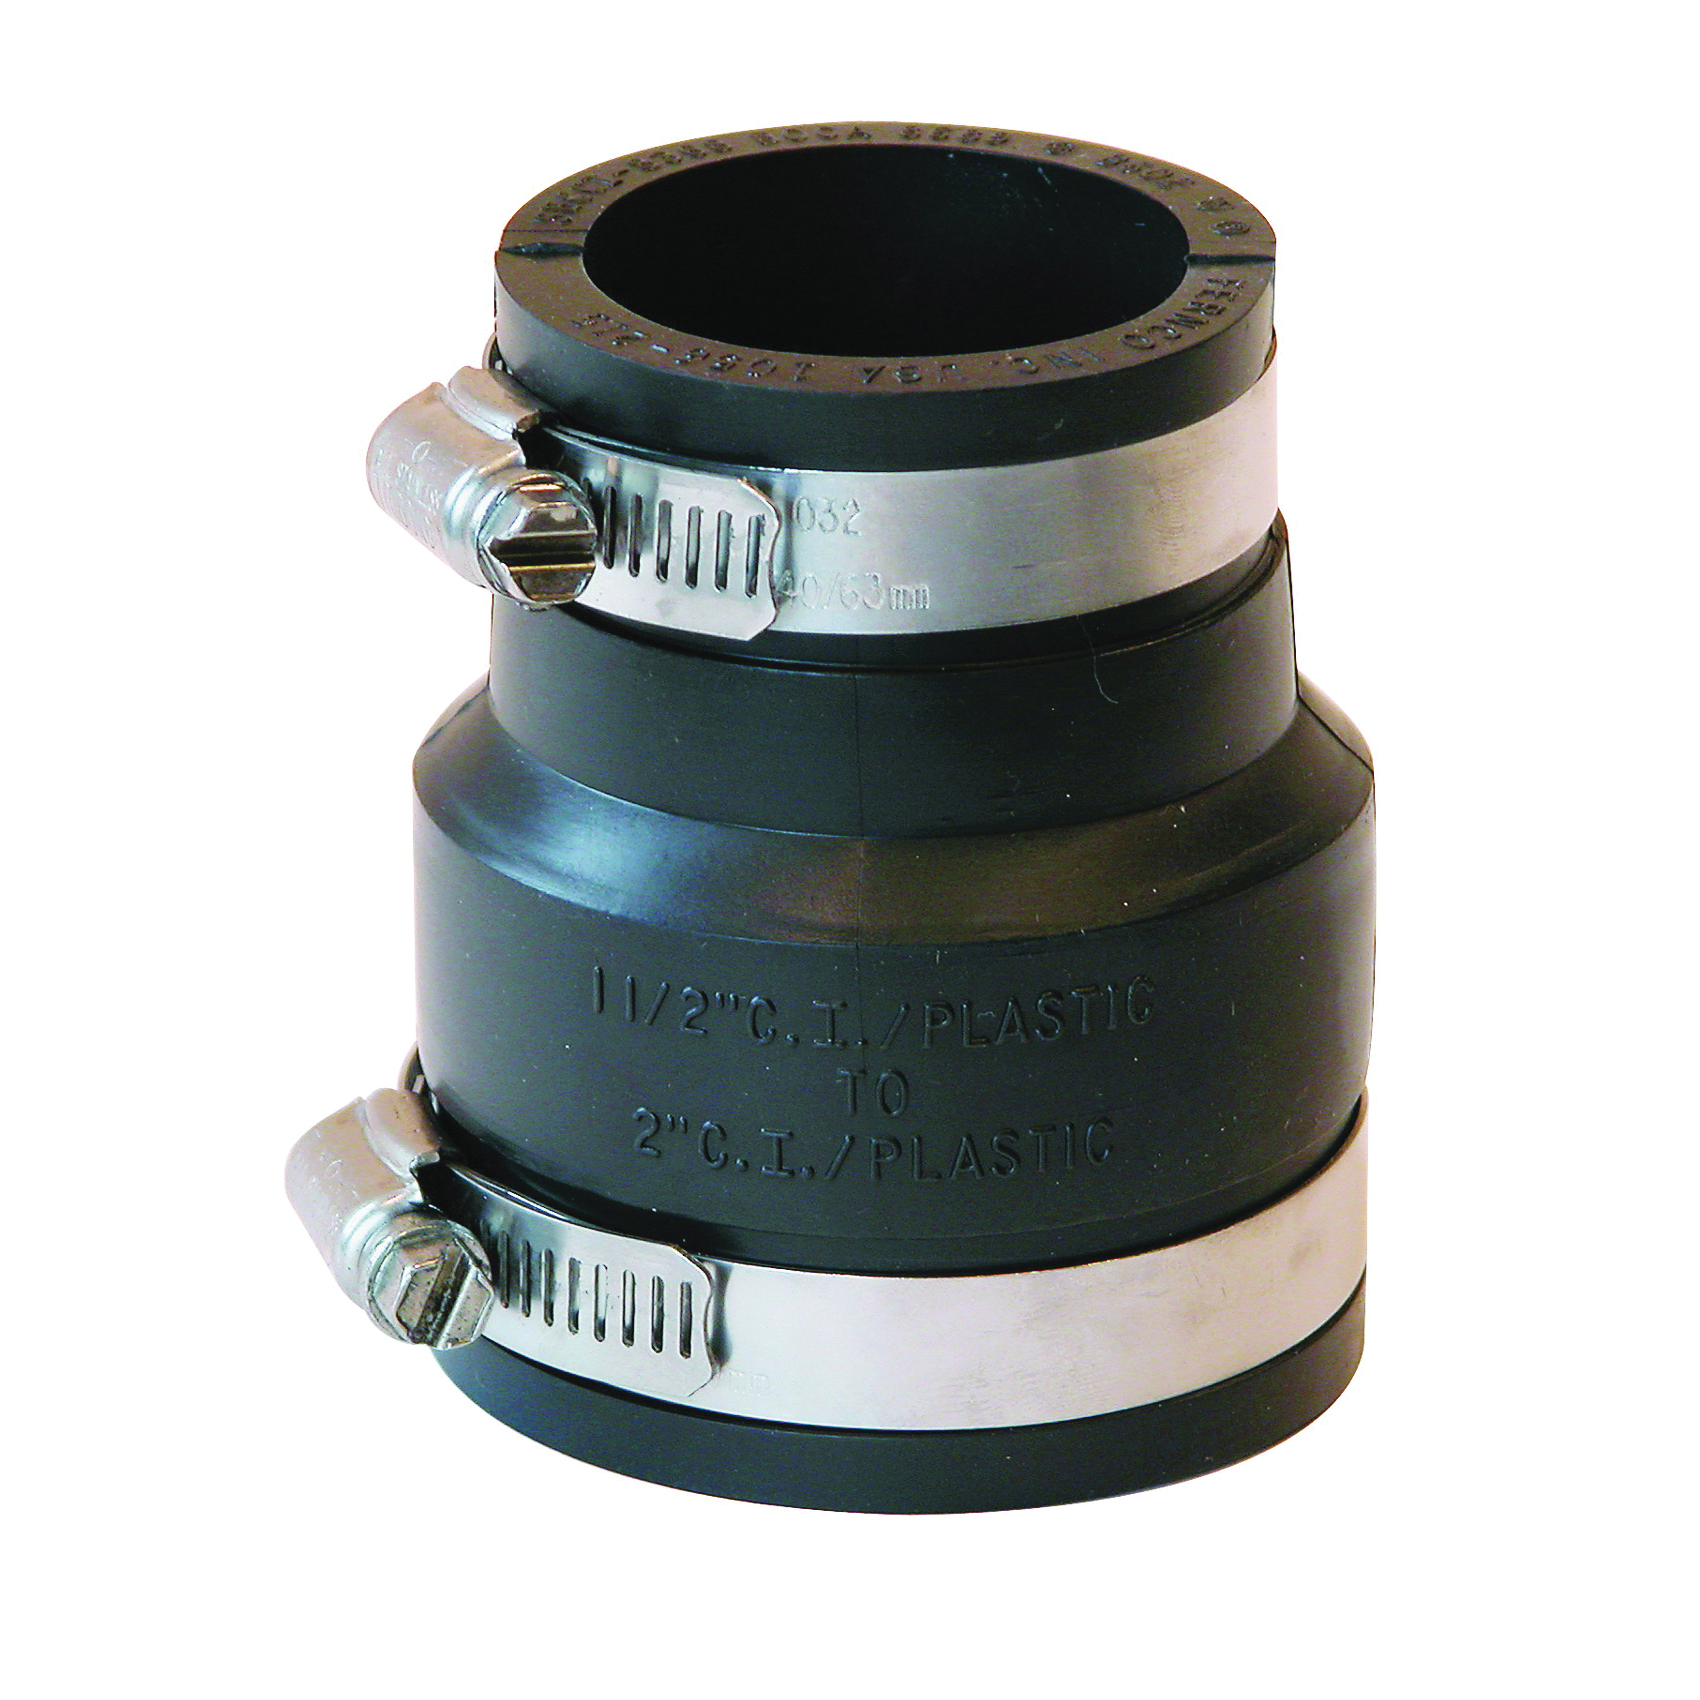 Picture of FERNCO P1056-215 Flexible Pipe Coupling, 2 x 1-1/2 in, PVC, Black, 4.3 psi Pressure